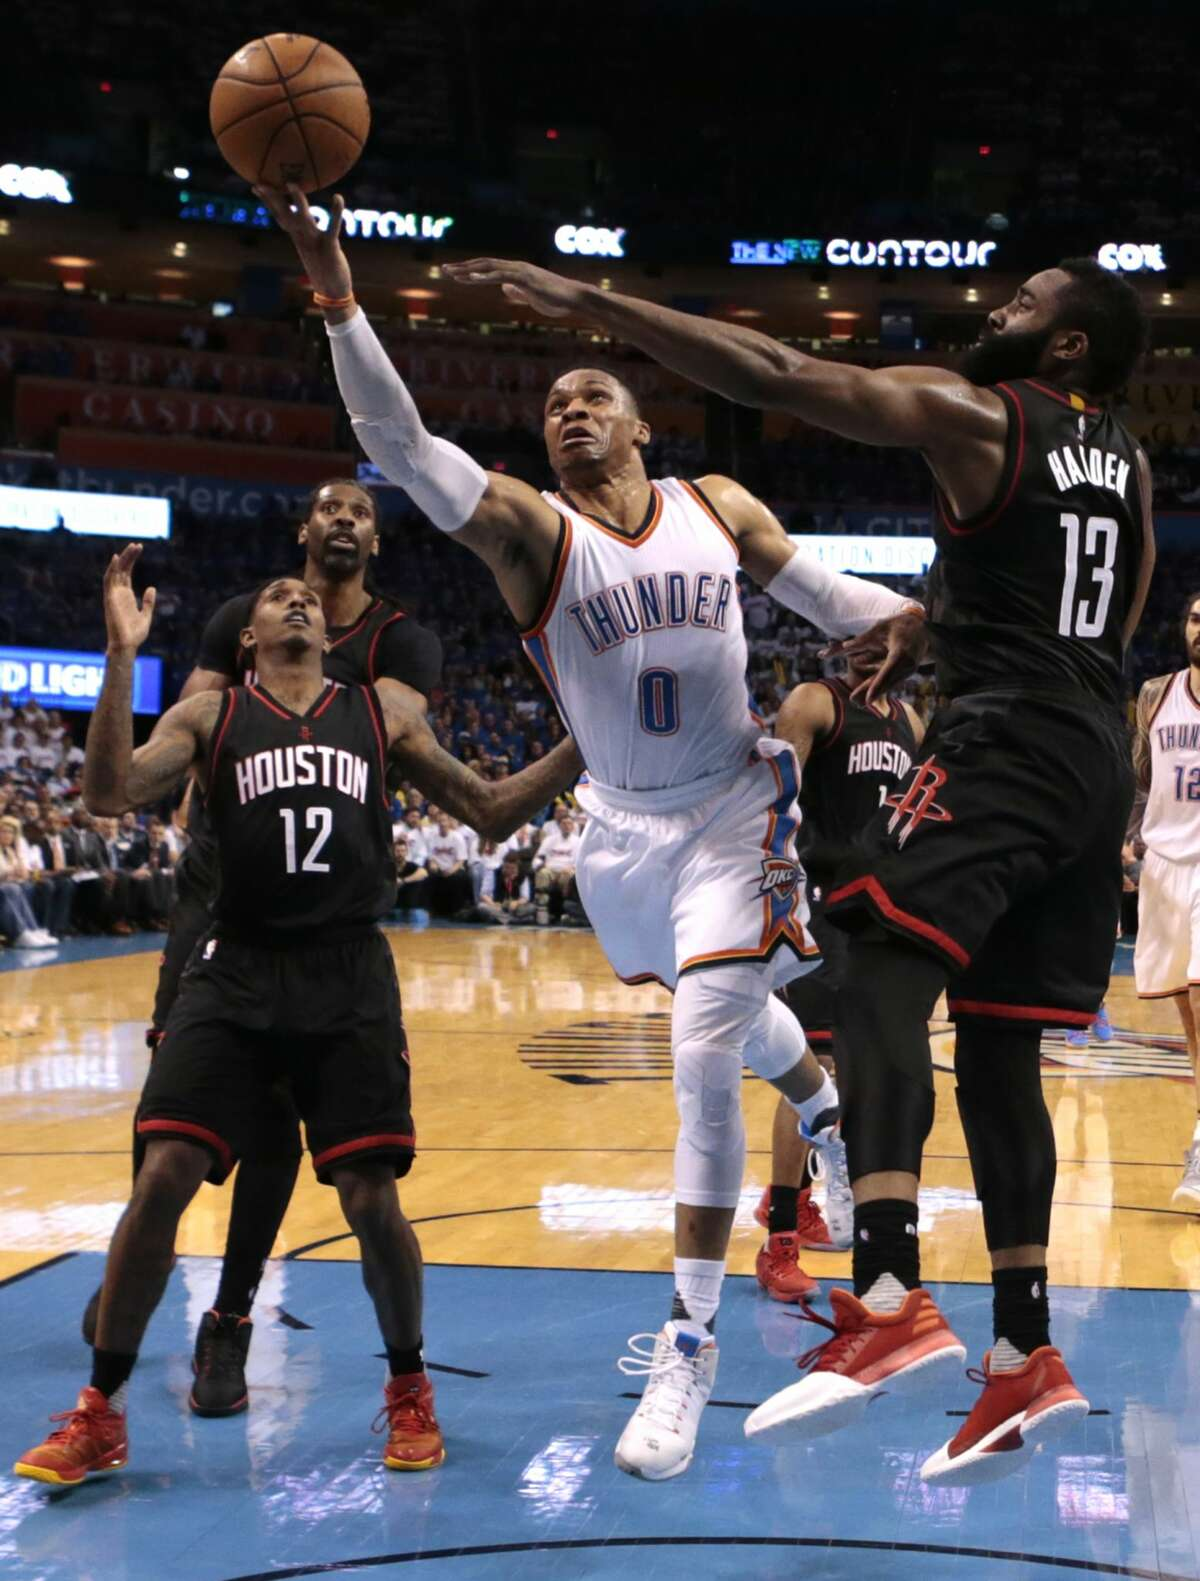 Oklahoma City Thunder guard Russell Westbrook (0) drives to the basket past Houston Rockets guard James Harden (13) during the second half of Game 3 of the NBA Western Conference first-round playoff series at Chesapeake Energy Arena on Friday, April 21, 2017, in Oklahoma City. The Thunder beat the Rockets 115-113. The Rockets lead the best-of-seven series 2-1. ( Brett Coomer / Houston Chronicle )